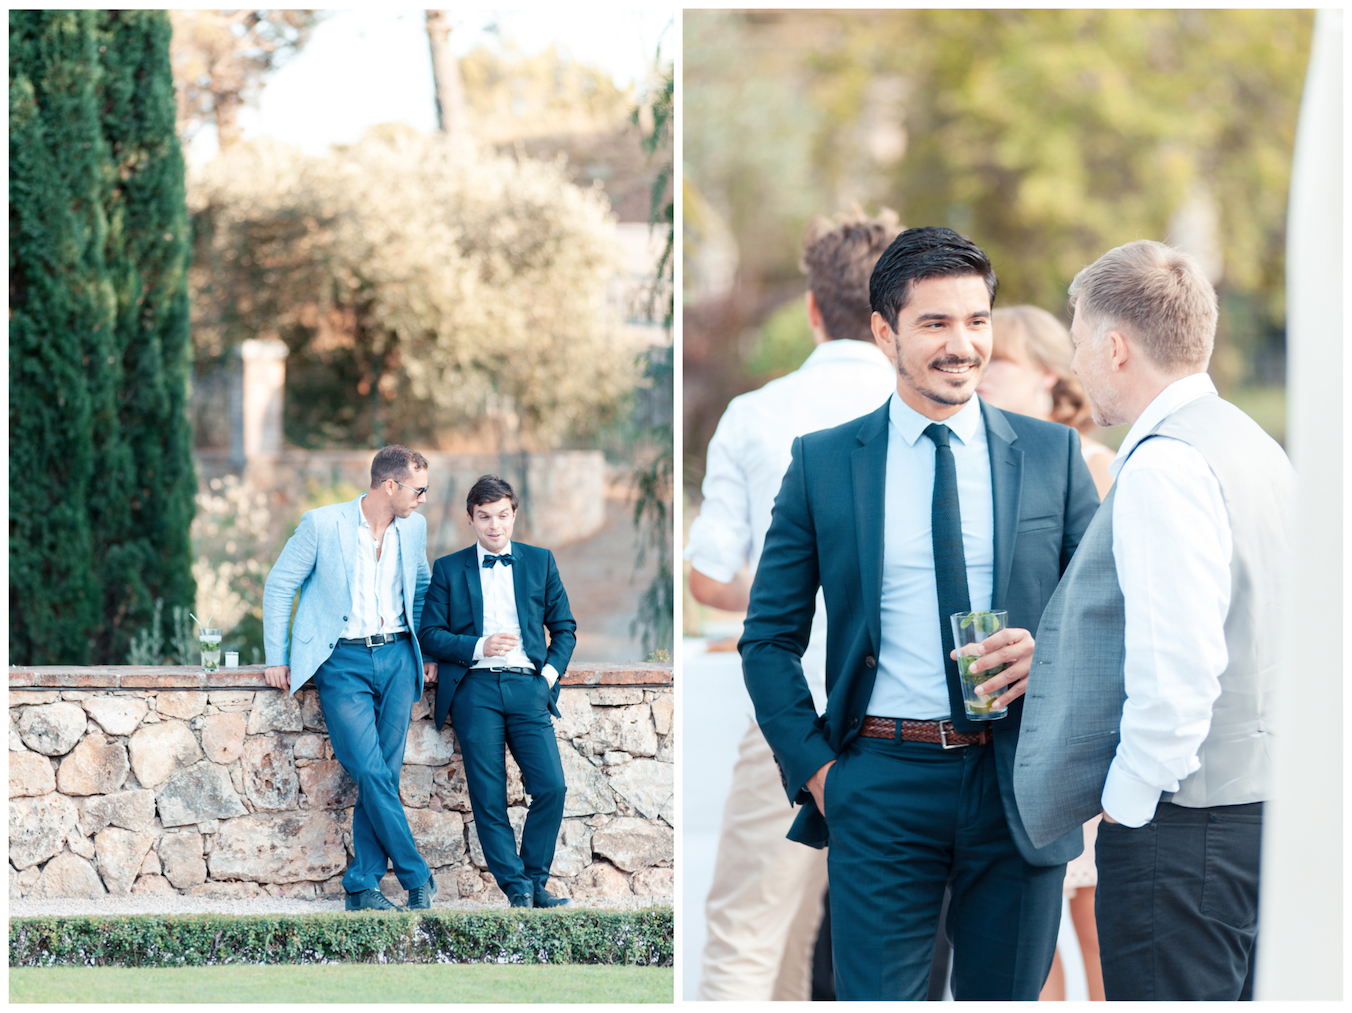 Font-du-Broc-Provence-Wedding-Photographer-04